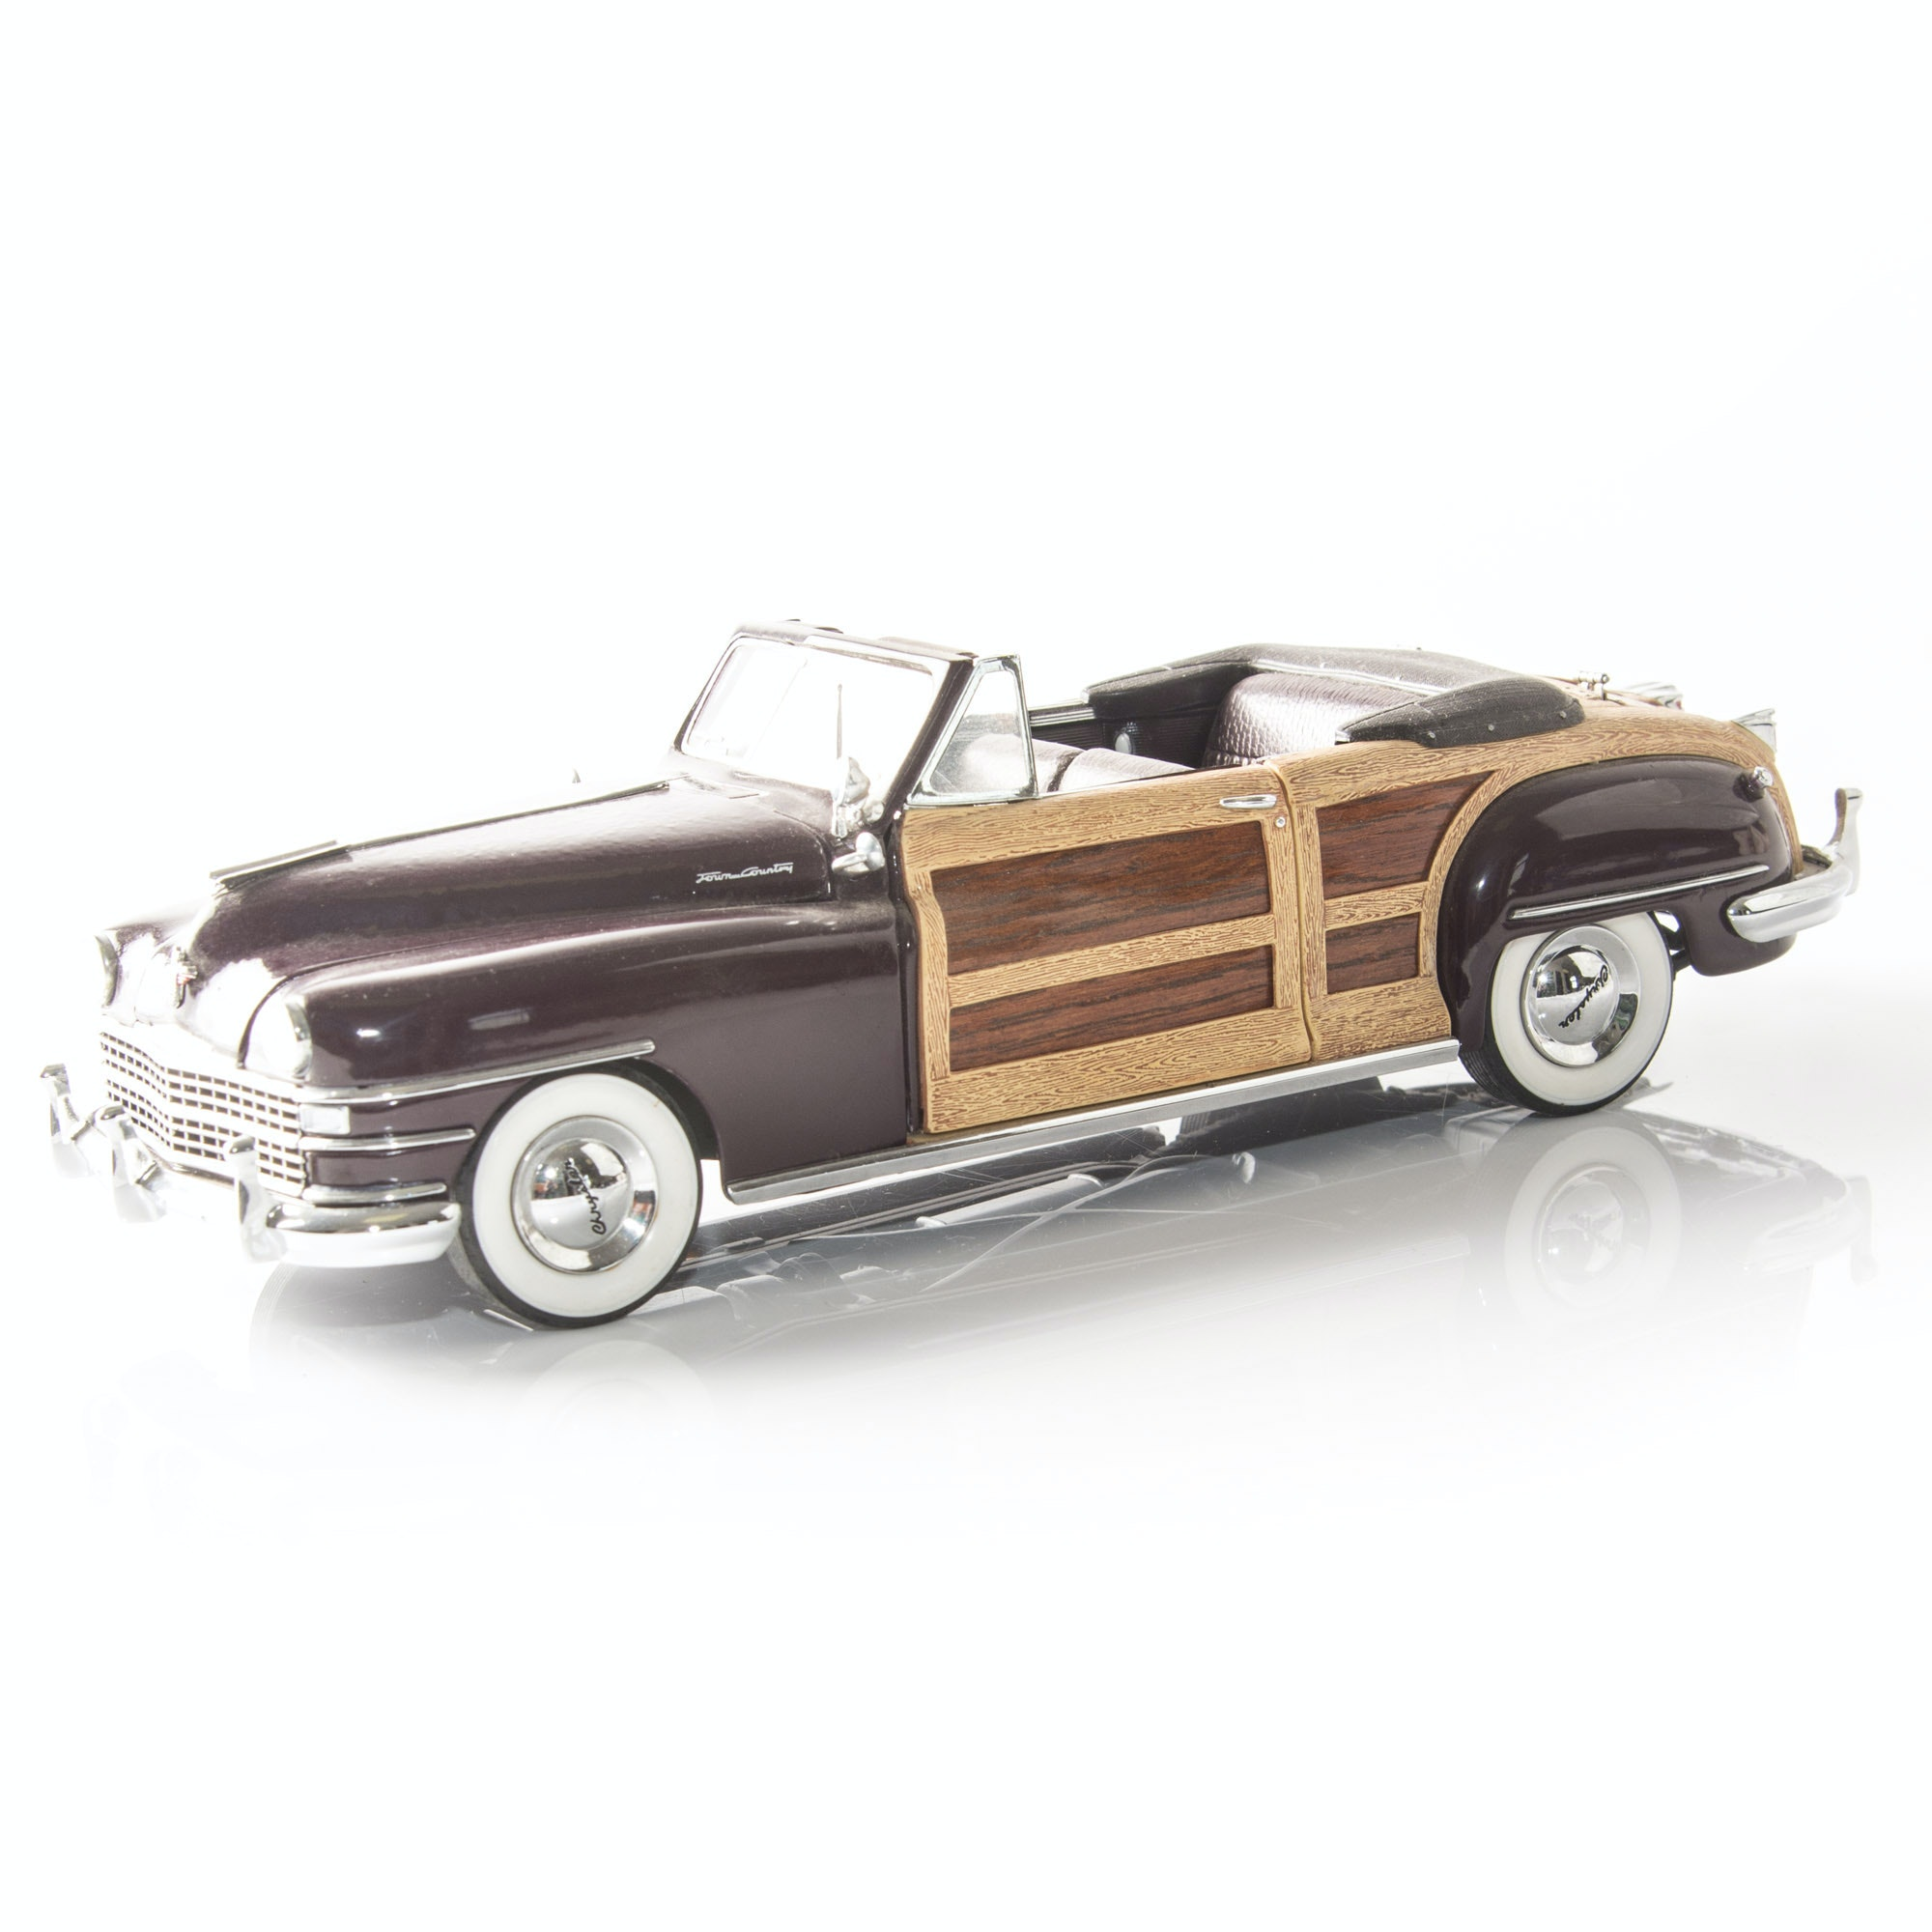 Danbury Mint Die-Cast Model 1948 Chrysler Town & Country Convertible